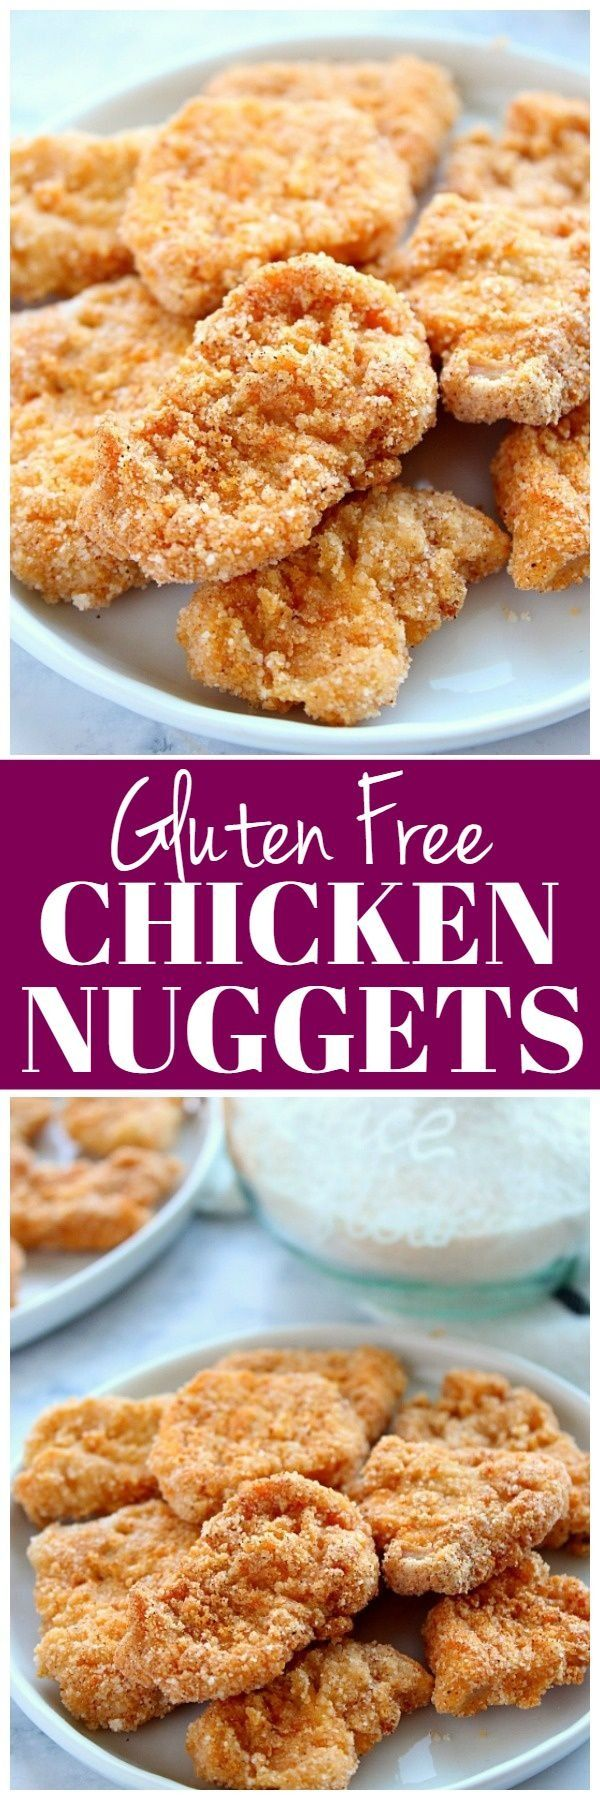 Seriously delicious Gluten Free Chicken Nuggets baked in